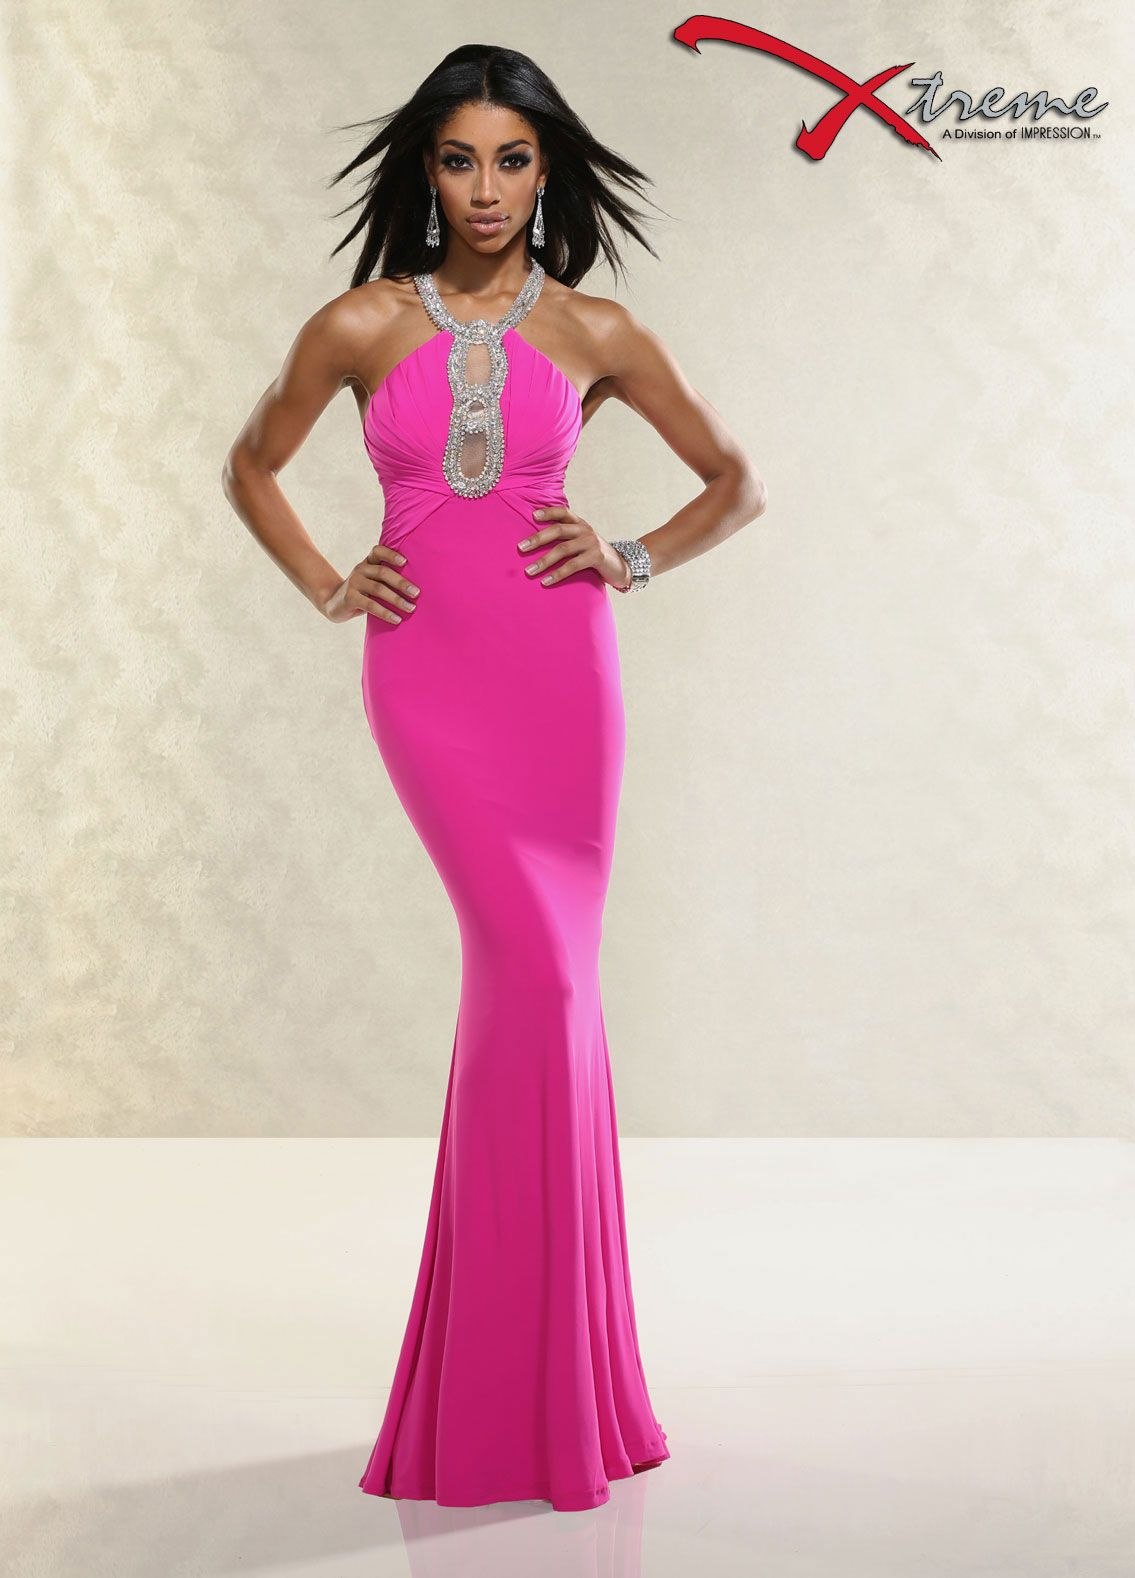 Xtreme prom dress pageant dress formal gown evening gown